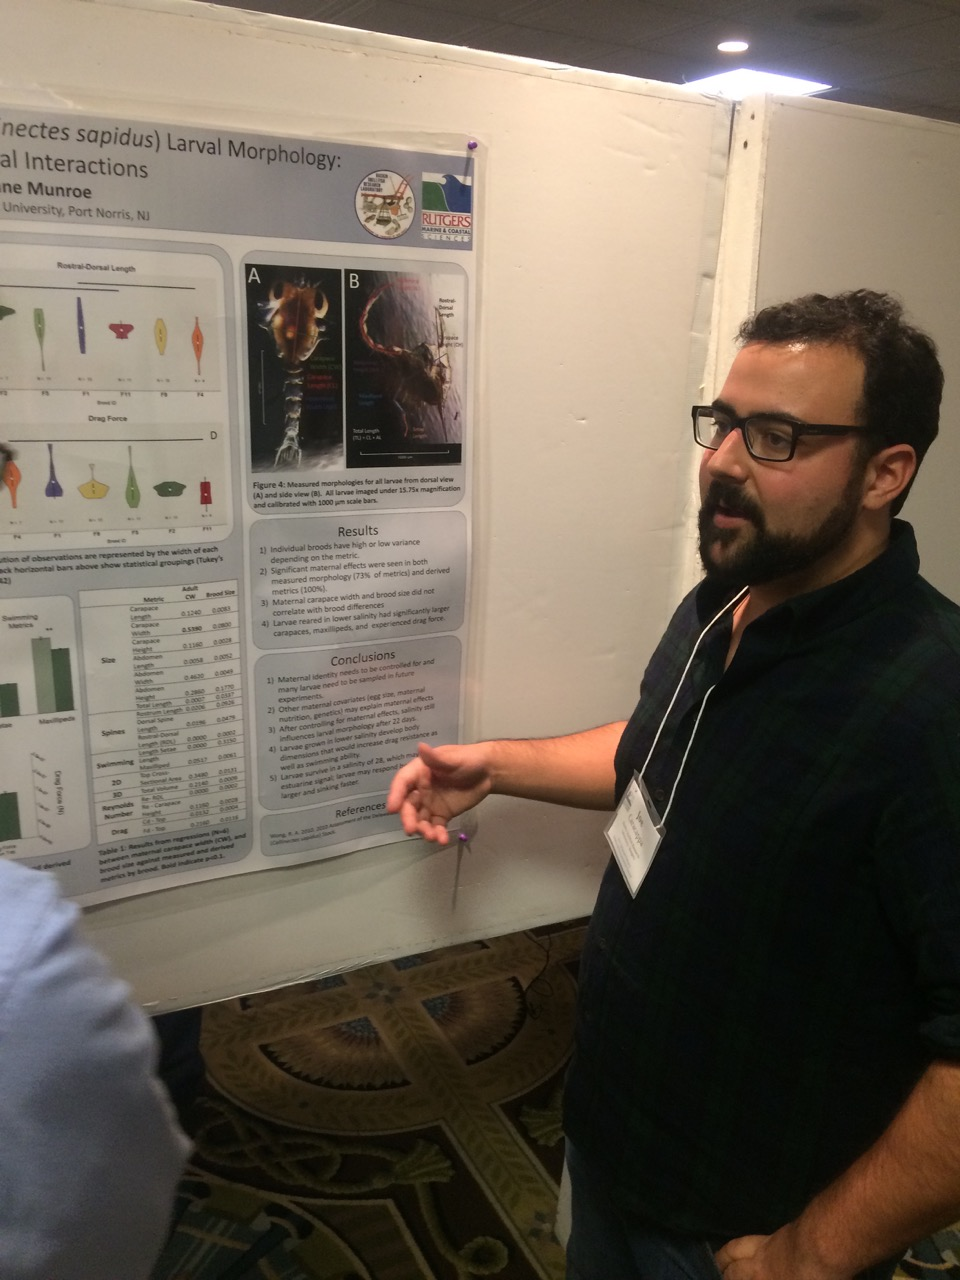 Joe Caracappa's winning poster on this research on blue crab larvae.